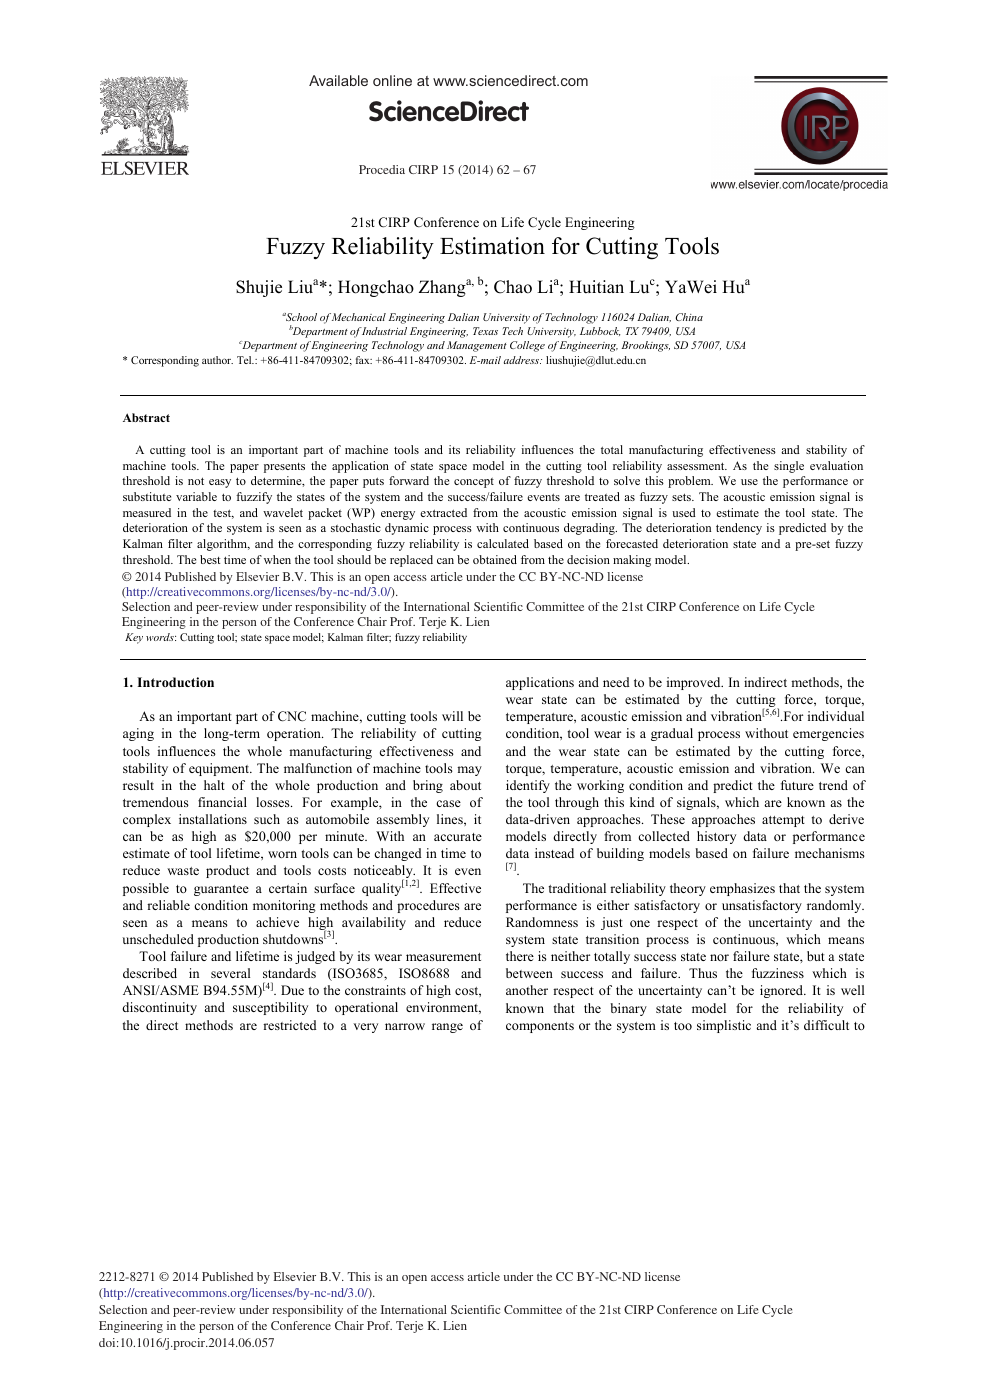 Fuzzy Reliability Estimation for Cutting Tools – topic of